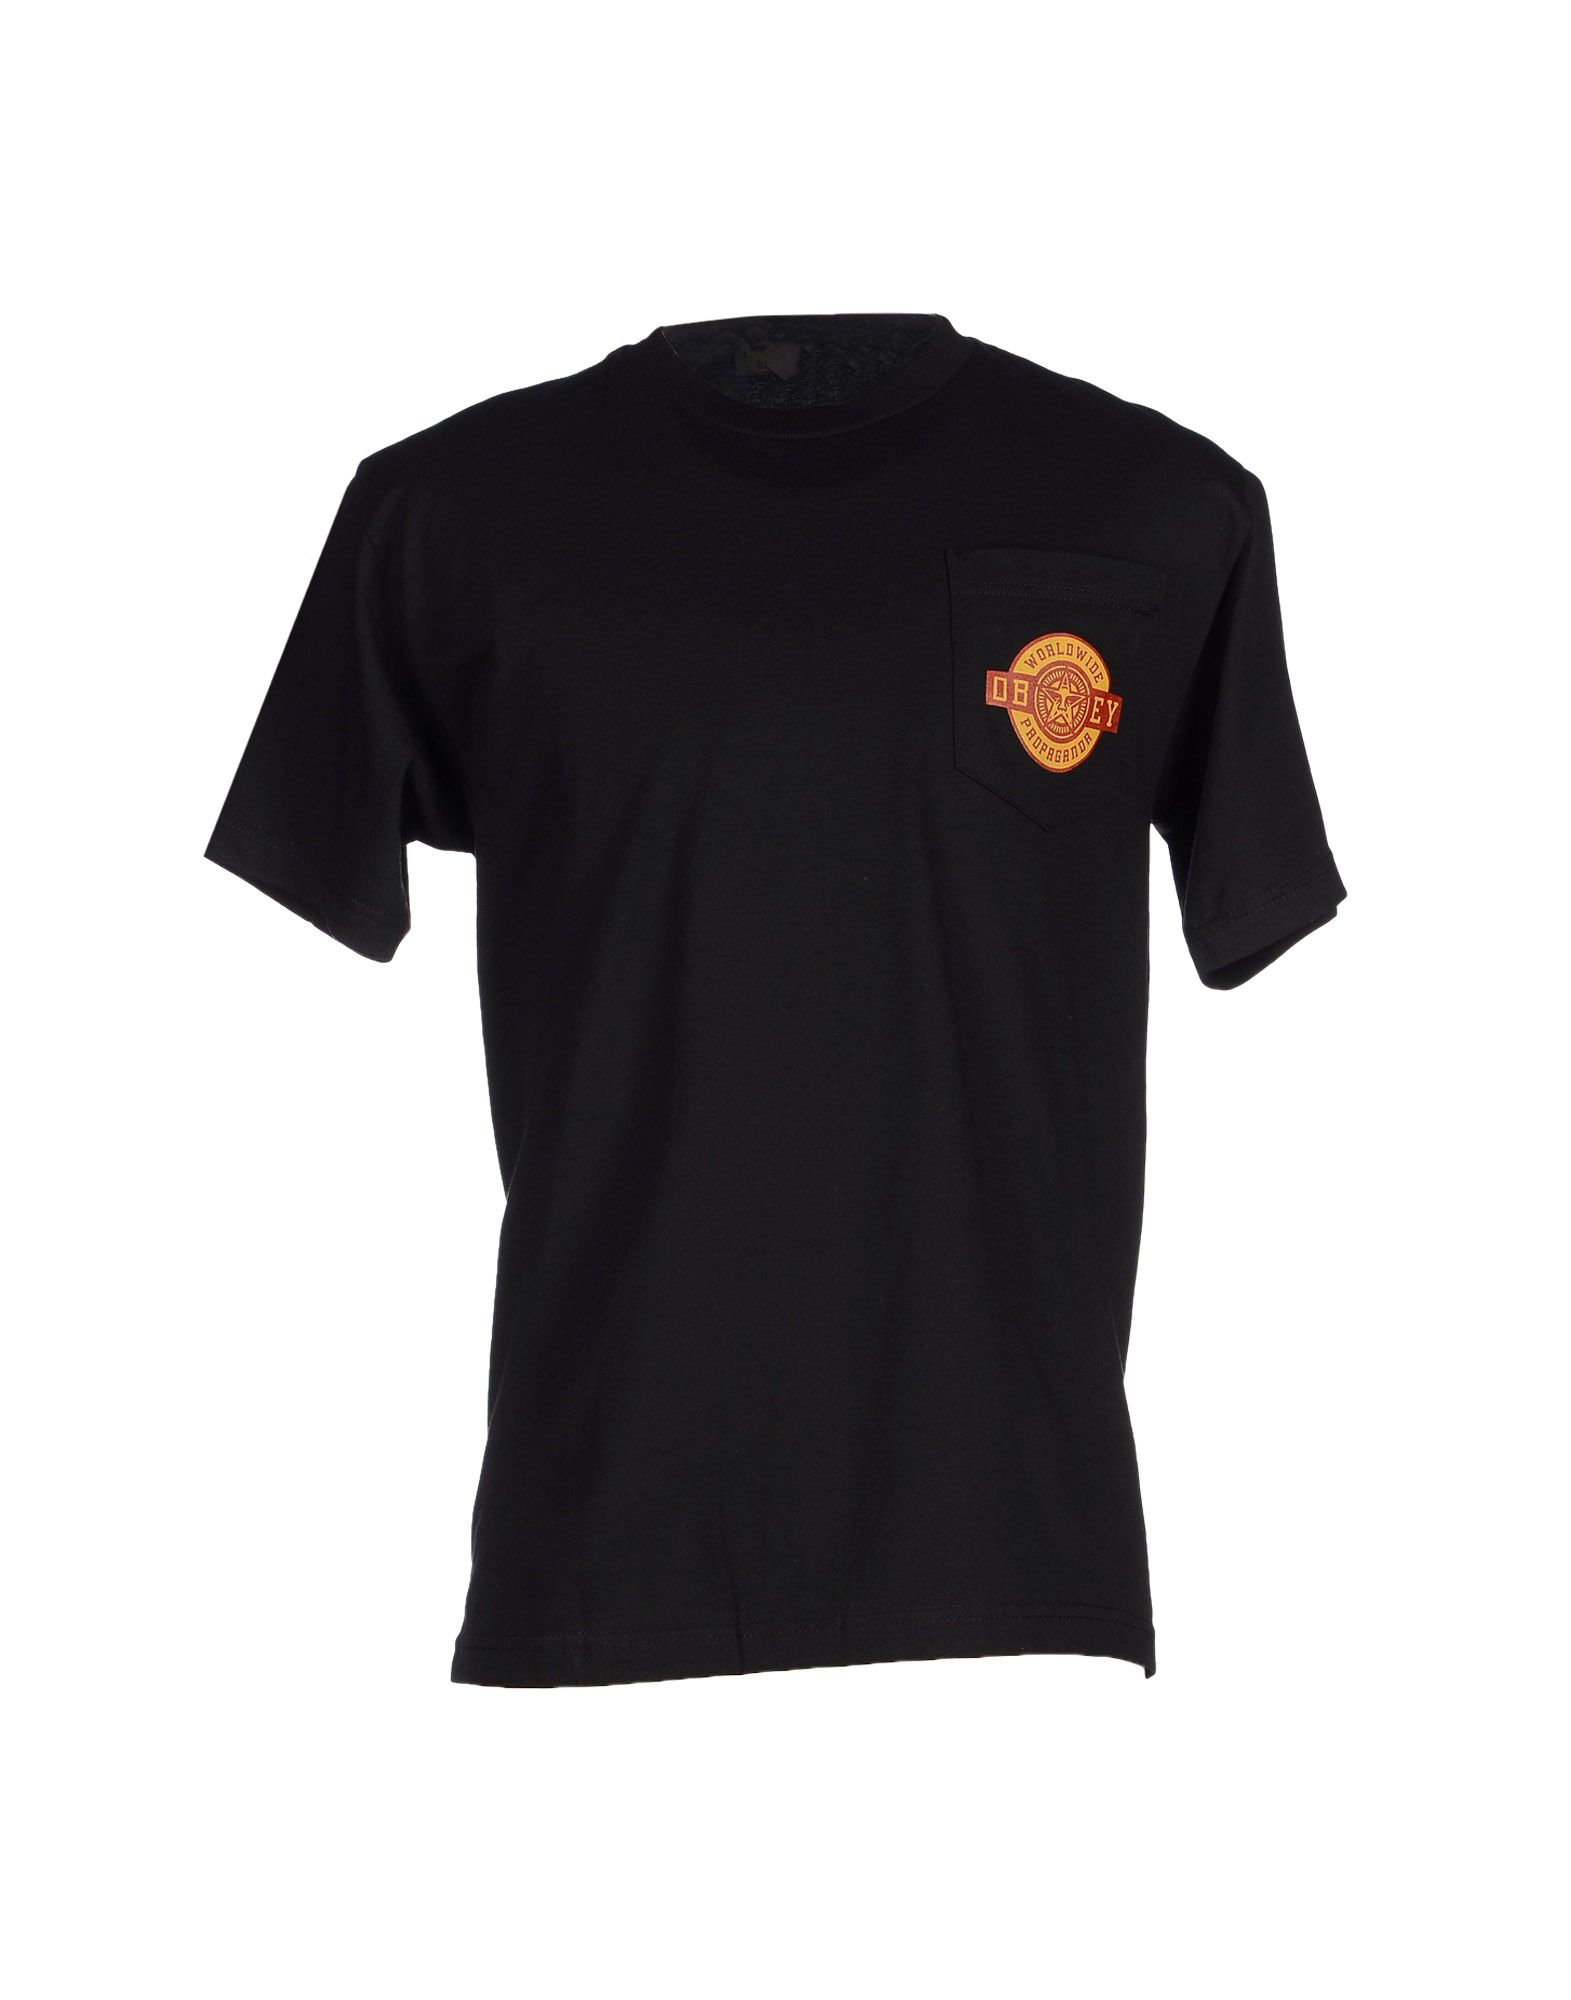 Obey T Shirt In Black For Men Lyst